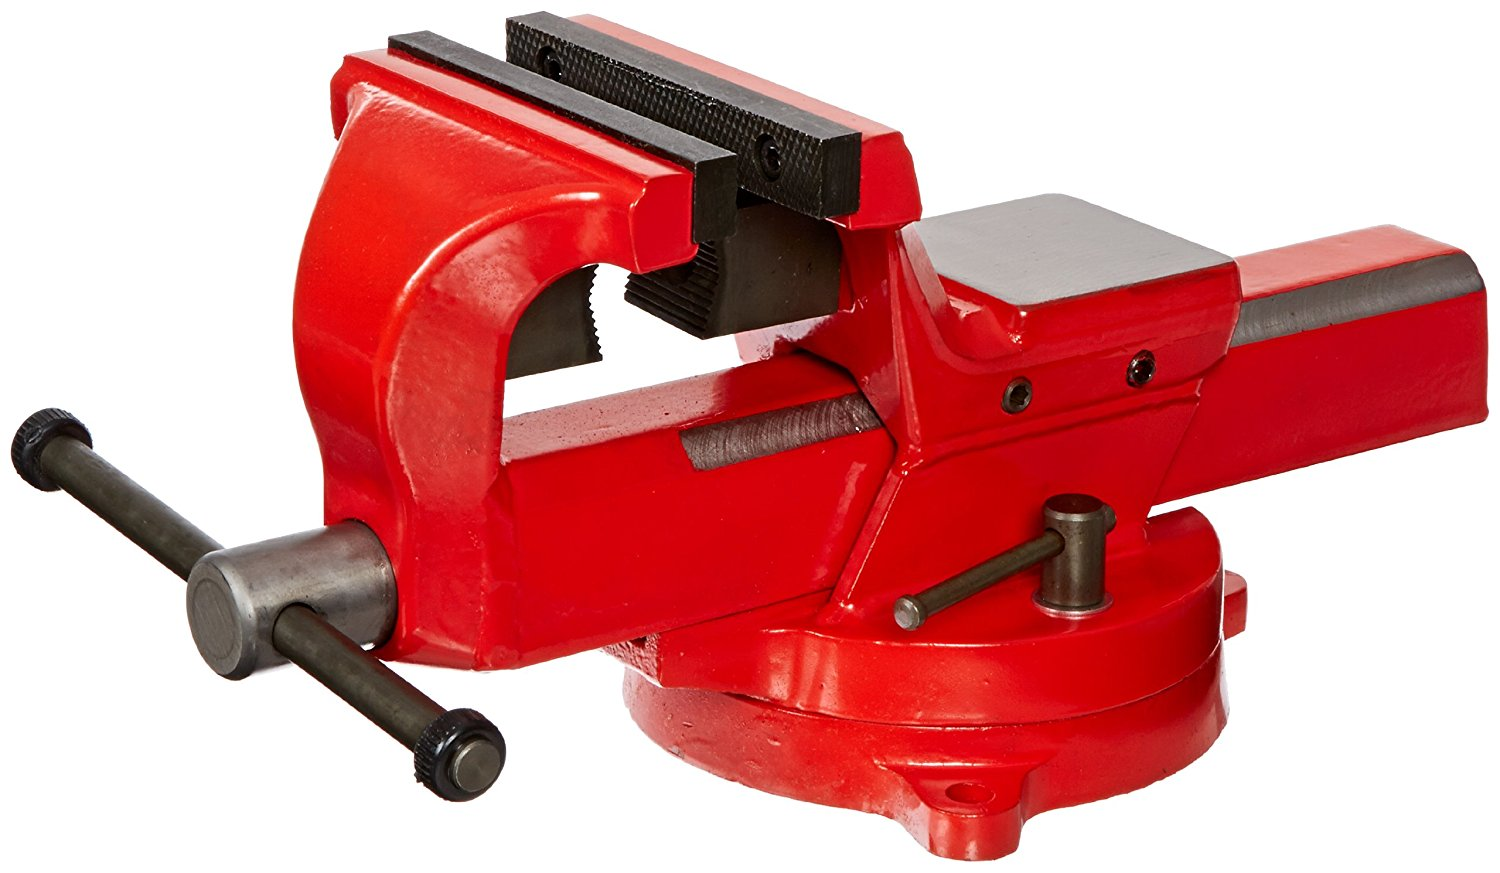 """Yost Vises FSV-5 5"""" Heavy-Duty Forged Steel Bench Vise with 360-Degree Swivel Base by Yost Vases"""